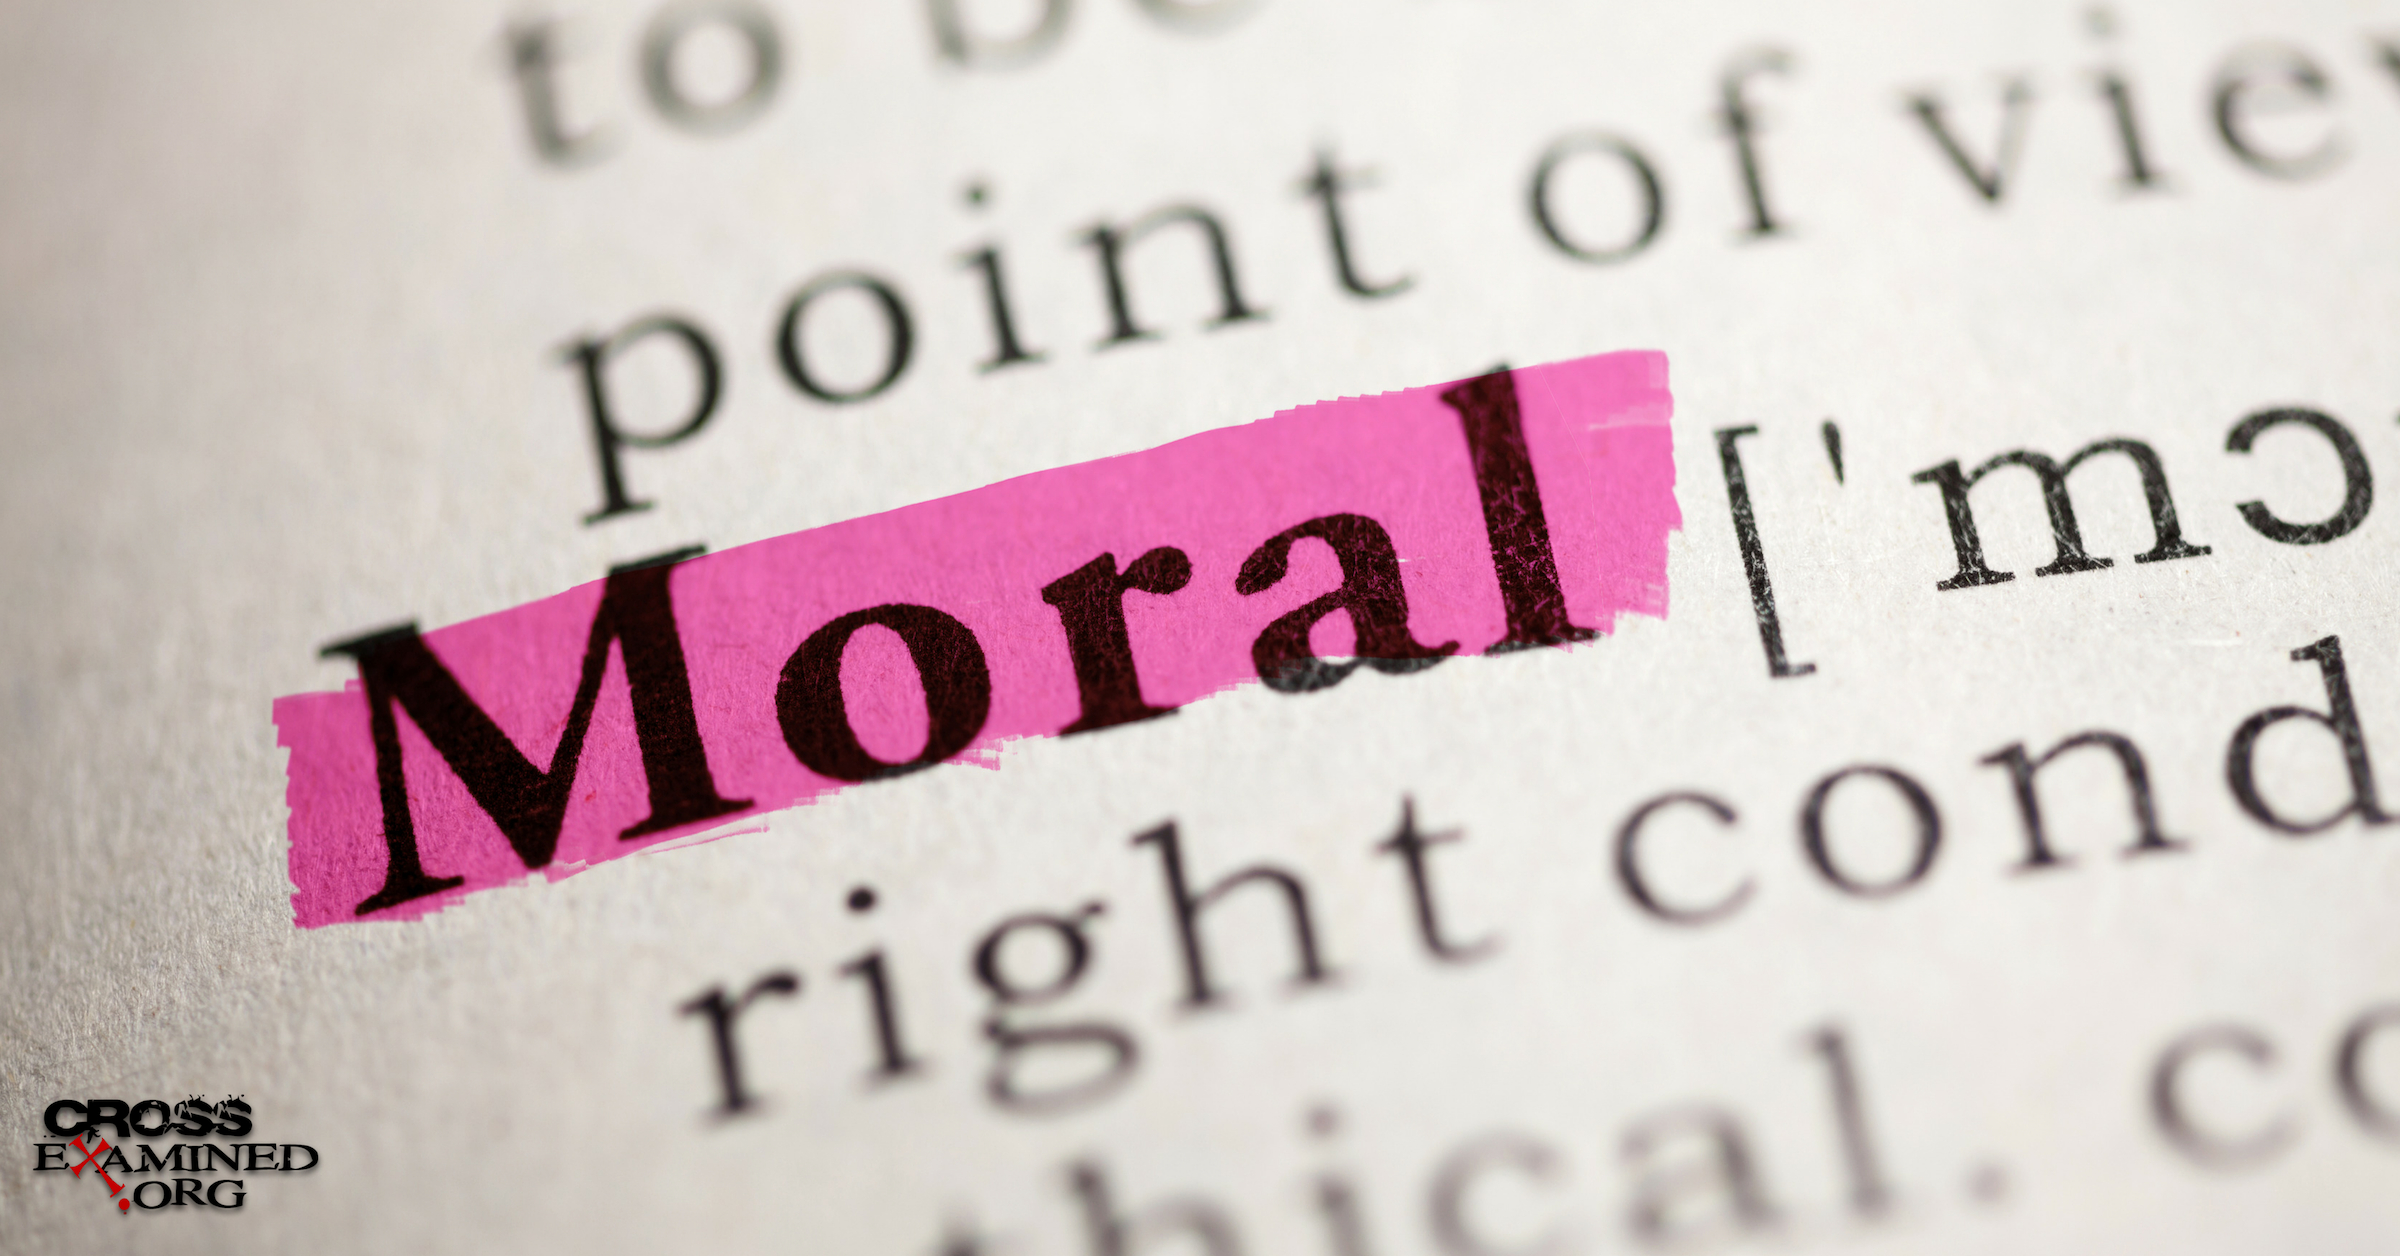 Do Objective Moral Truths Exist in Reality